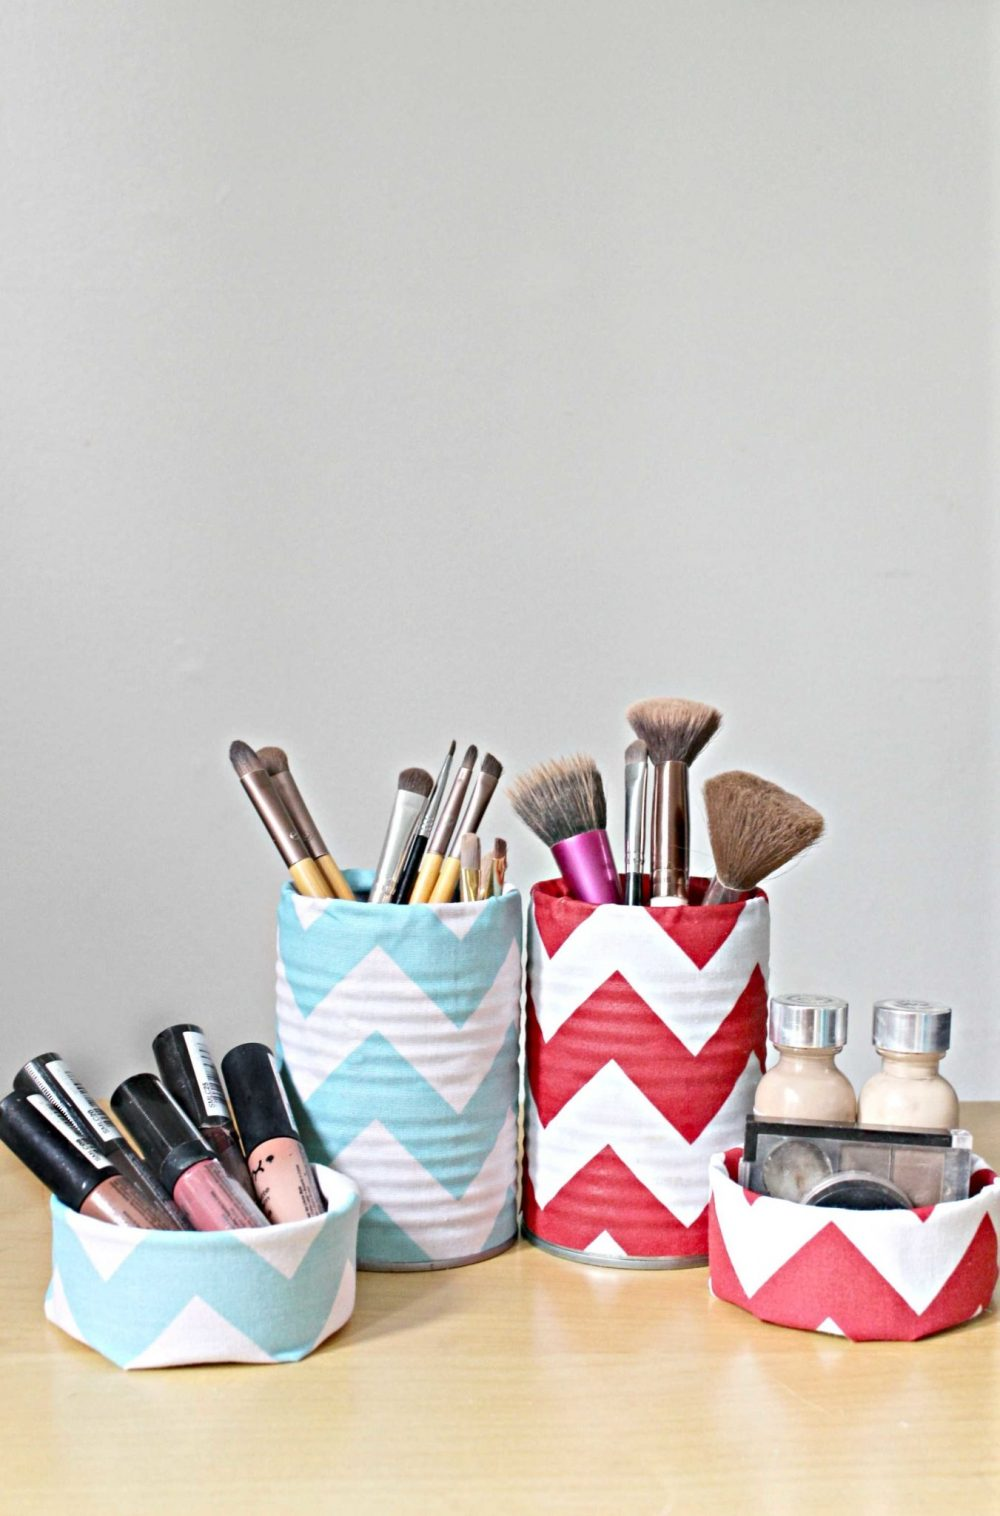 DIY makeup organizer set for brushes and cosmetics